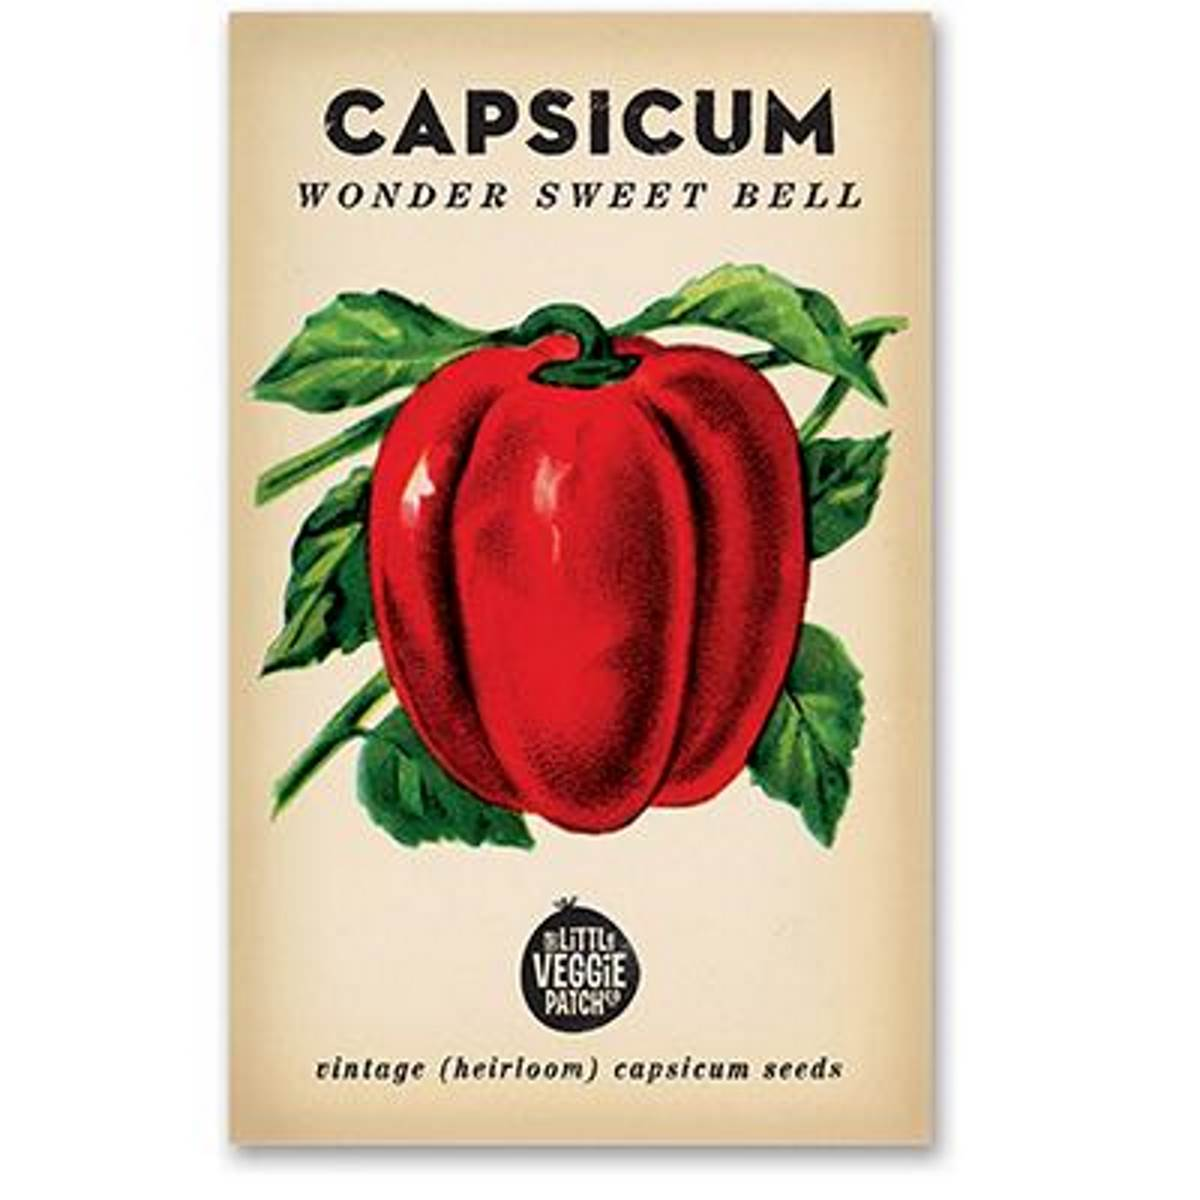 Capsicum (Wonder Sweet Bell) Heirloom Seeds - Seeds - Throw Some Seeds - Australian gardening gifts and eco products online!